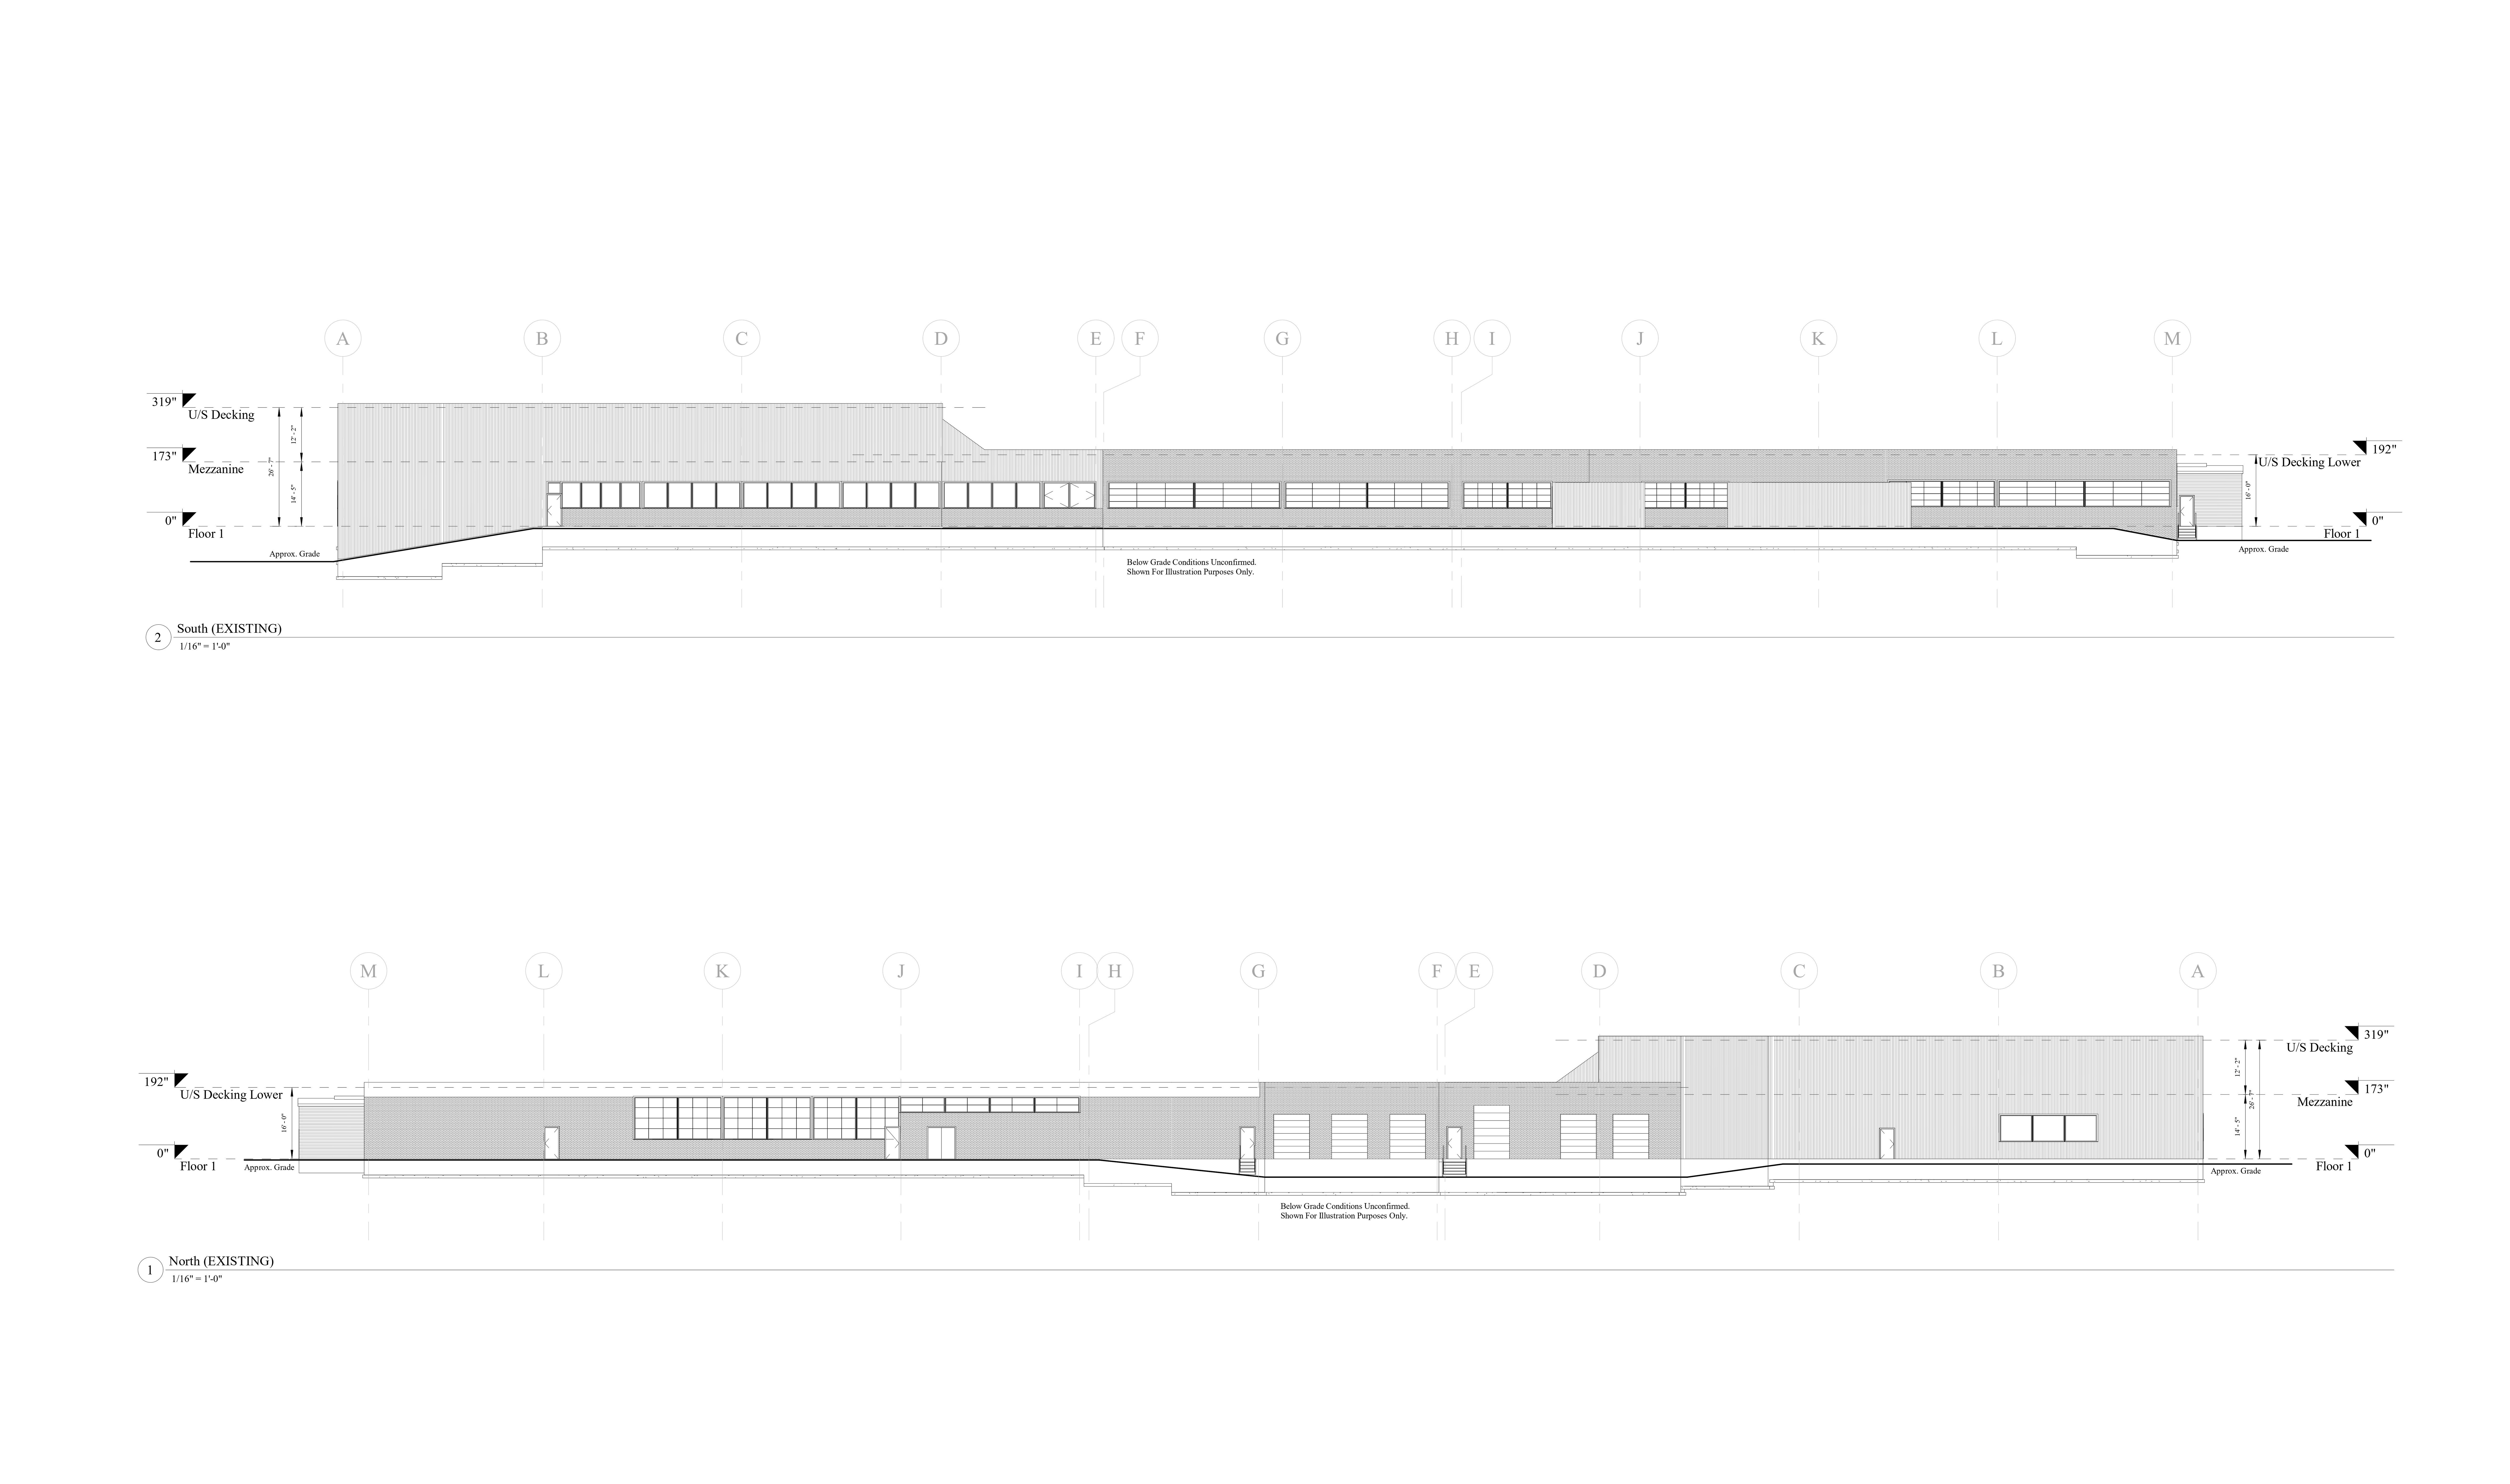 the AutoCad drawings of 2D elevation of the north and south viewpoints of the building.